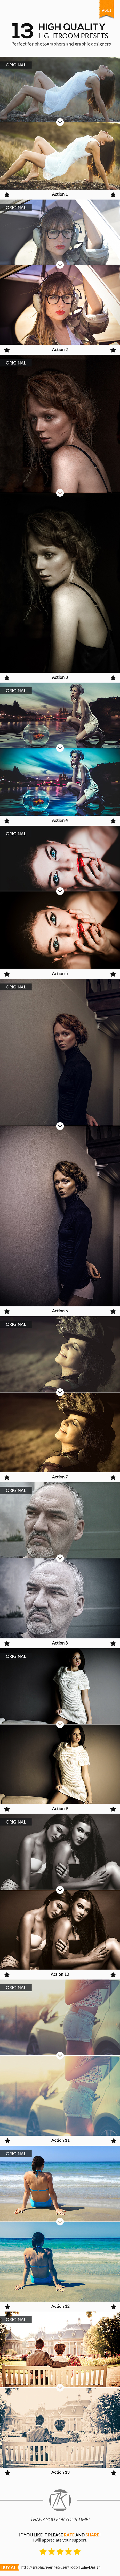 GraphicRiver 13 High Quality Lightroom Presets 10475979